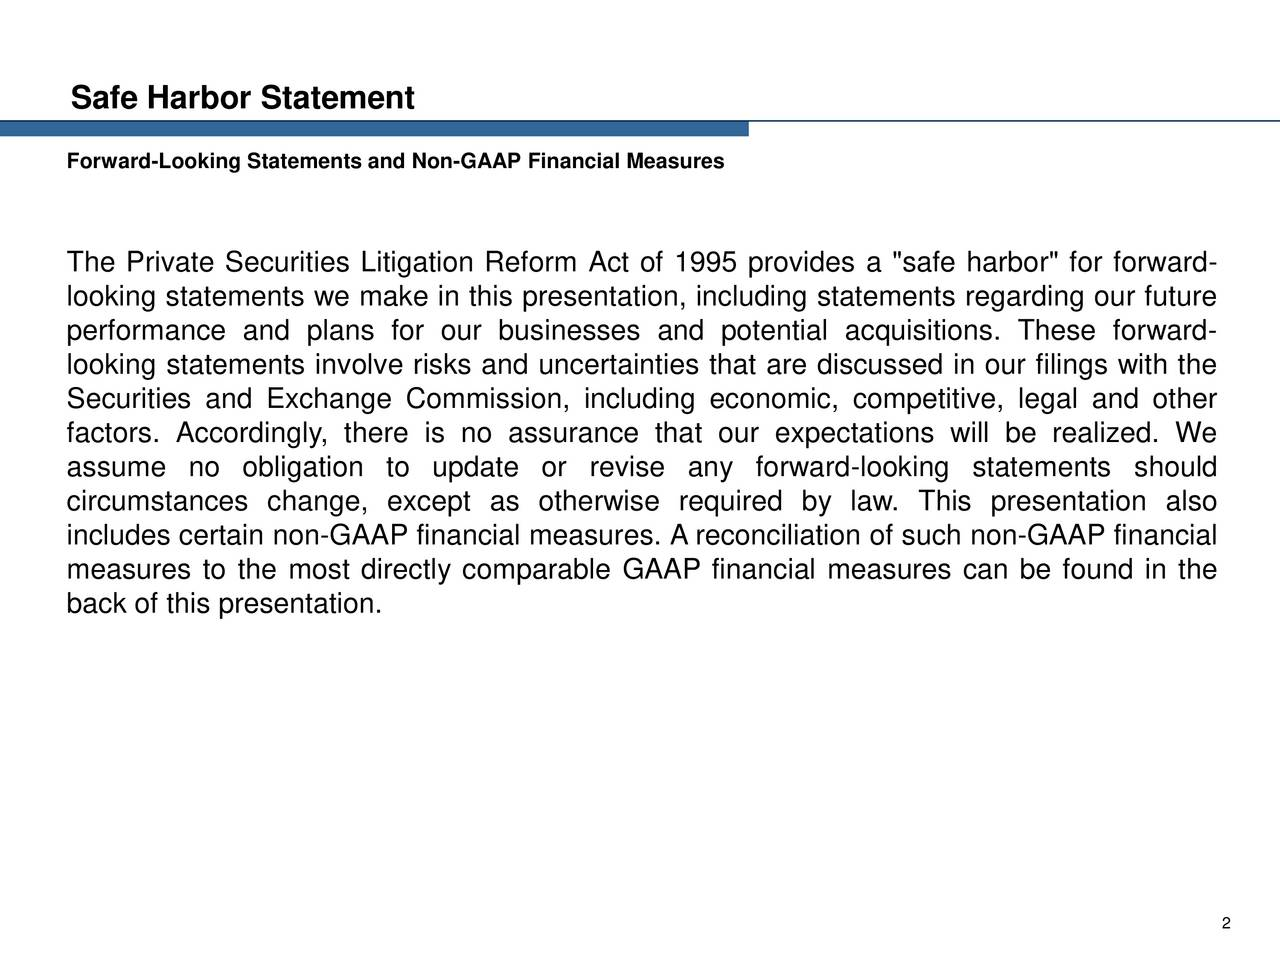 """Forward-Looking Statements and Non-GAAP Financial Measures The Private Securities Litigation Reform Act of 1995 provides a """"safe harbor"""" for forward- looking statements we make in this presentation, including statements regarding our future performance and plans for our businesses and potential acquisitions. These forward- looking statements involve risks and uncertainties that are discussed in our filings with the Securities and Exchange Commission, including economic, competitive, legal and other factors. Accordingly, there is no assurance that our expectations will be realized. We assume no obligation to update or revise any forward-looking statements should circumstances change, except as otherwise required by law. This presentation also includes certain non-GAAP financial measures. A reconciliation of such non-GAAP financial measures to the most directly comparable GAAP financial measures can be found in the back of this presentation. 2"""